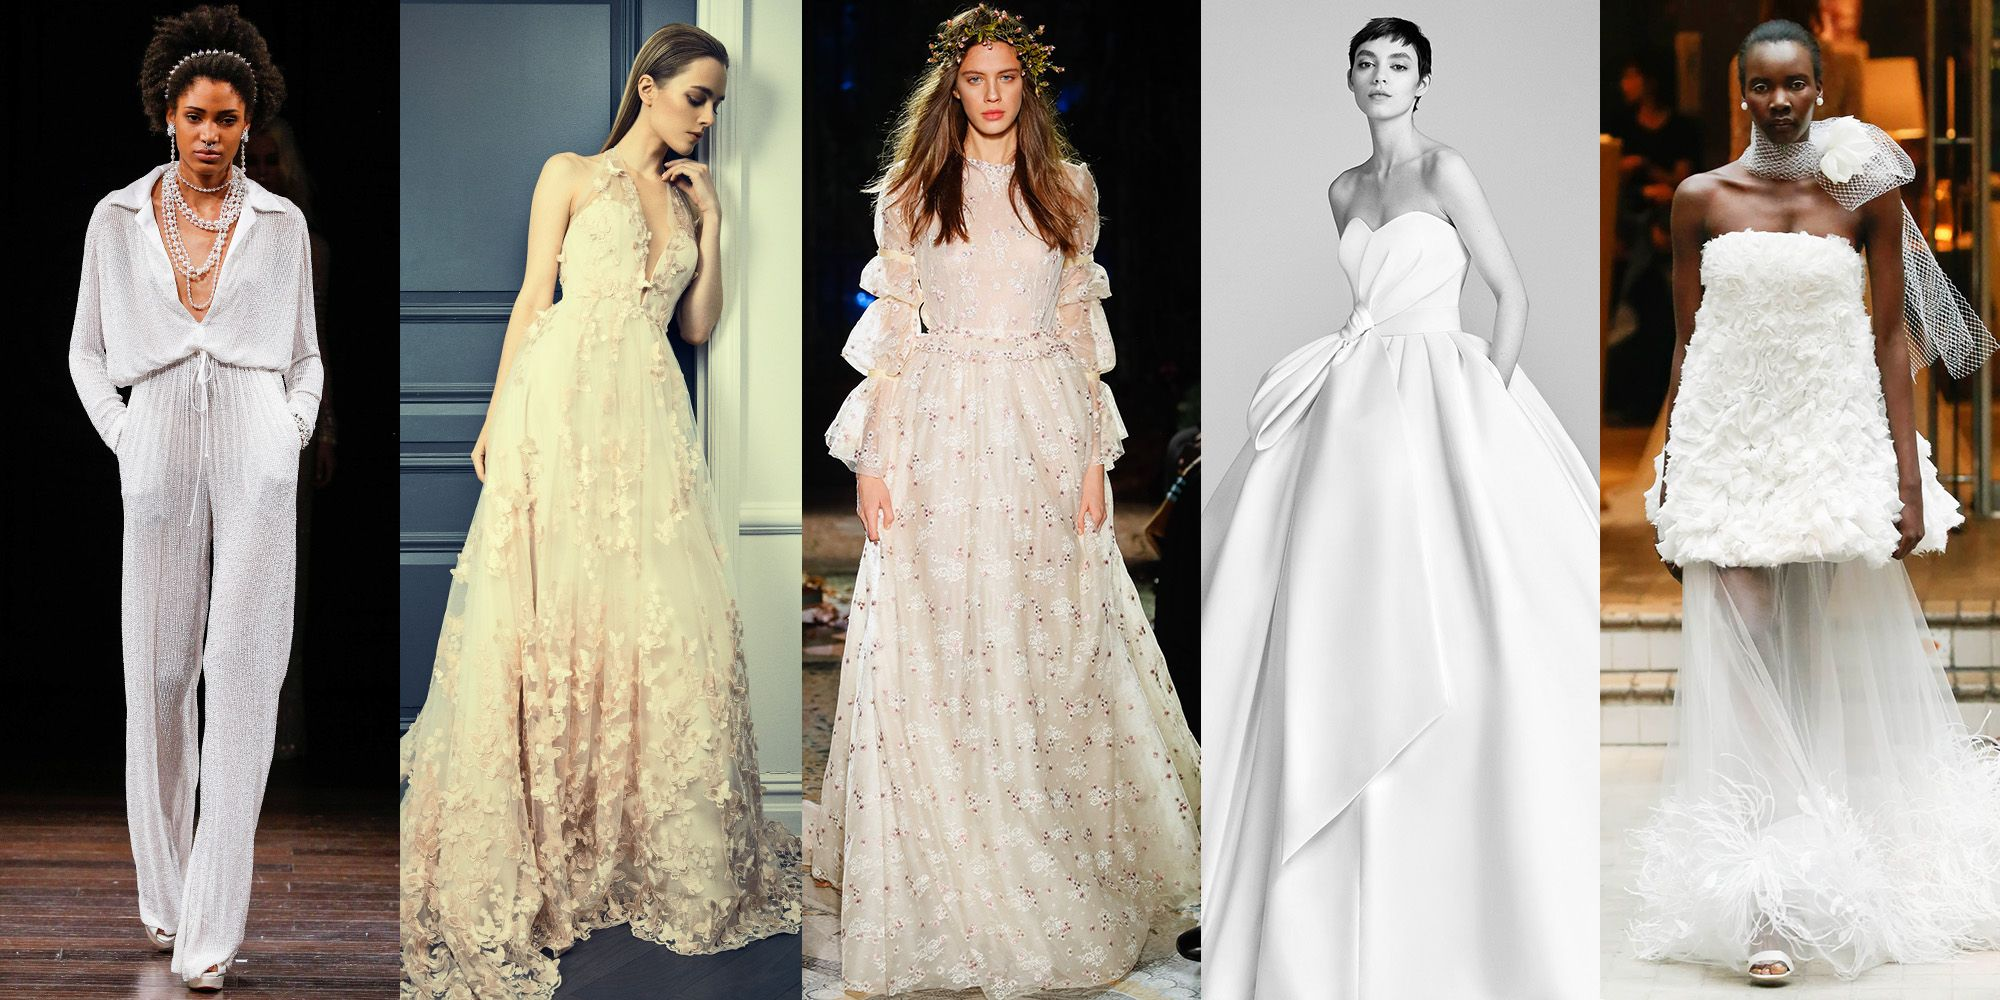 Wedding Style - Wedding Dresses, Hair, and Beauty - ELLE